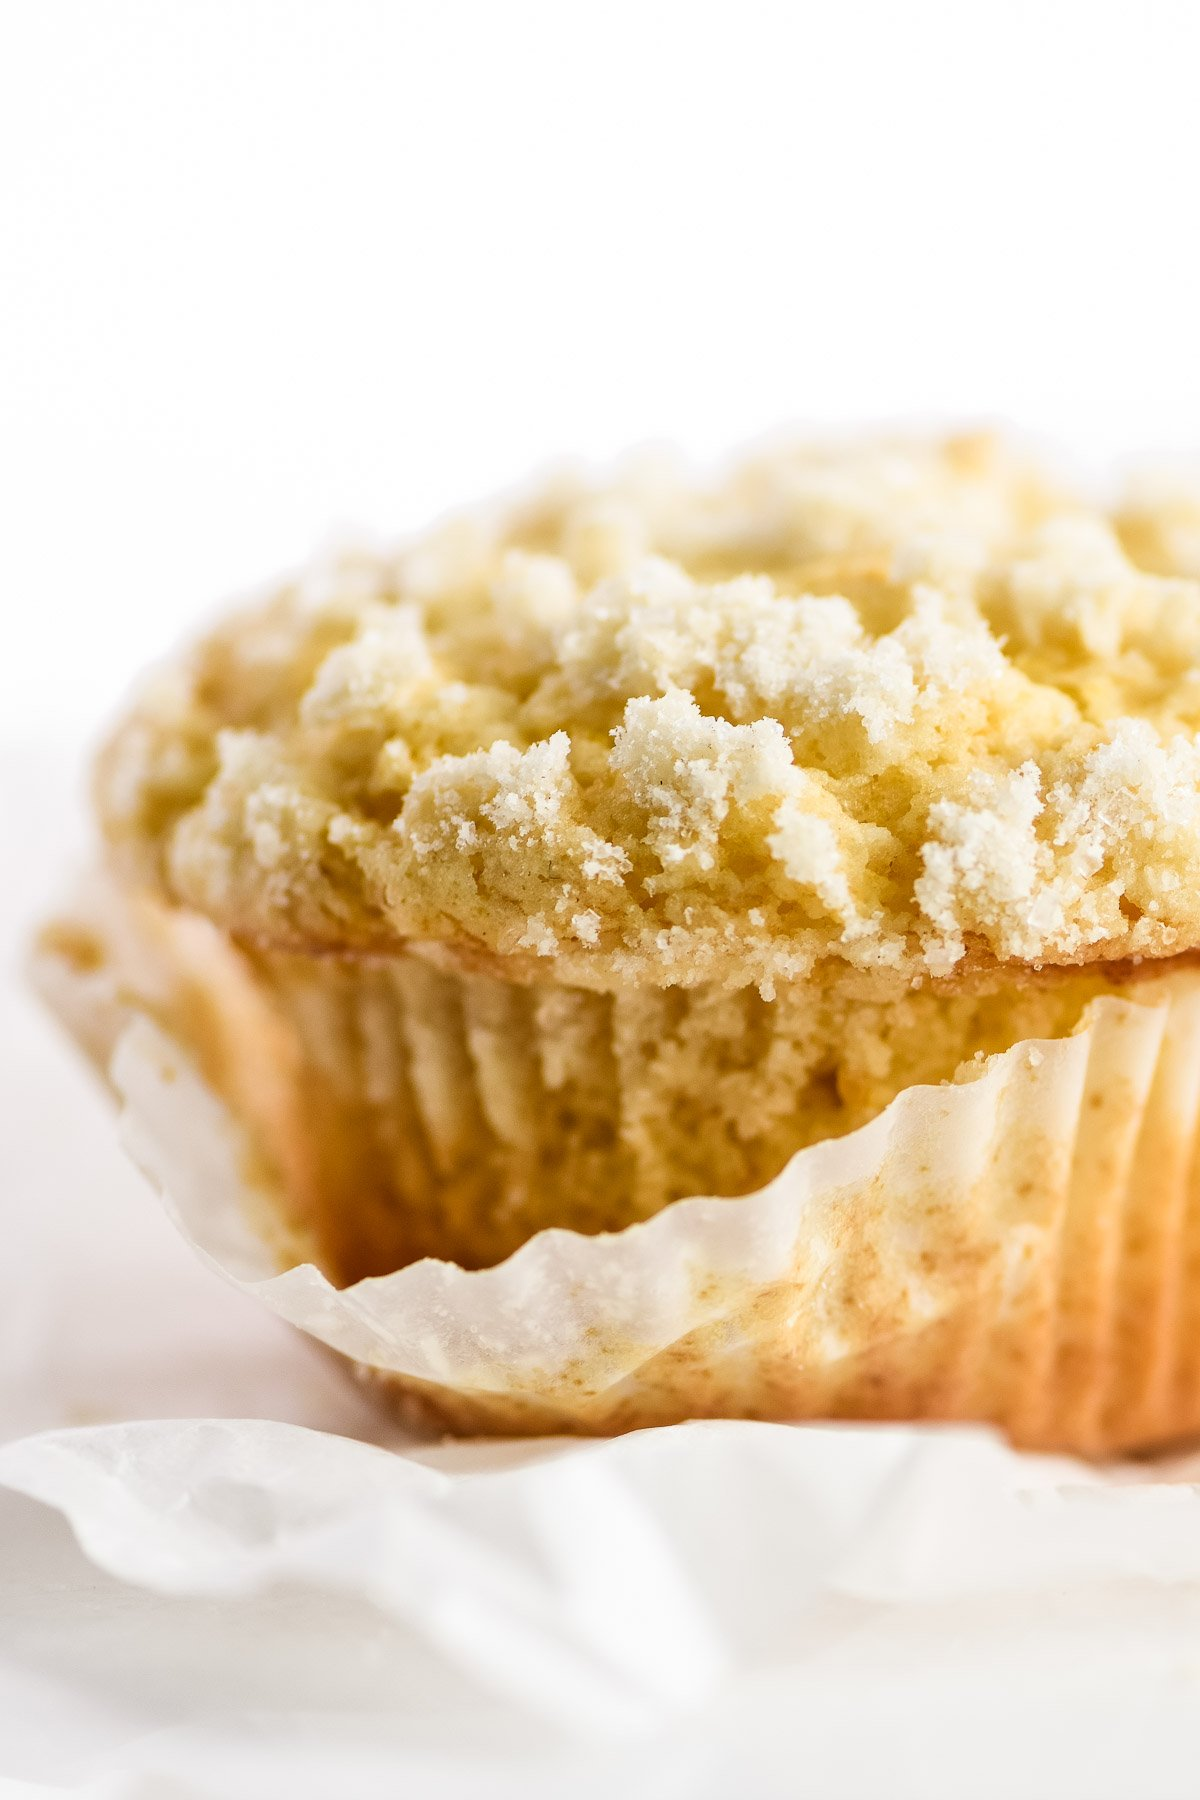 lemon streusel muffin in paper liner